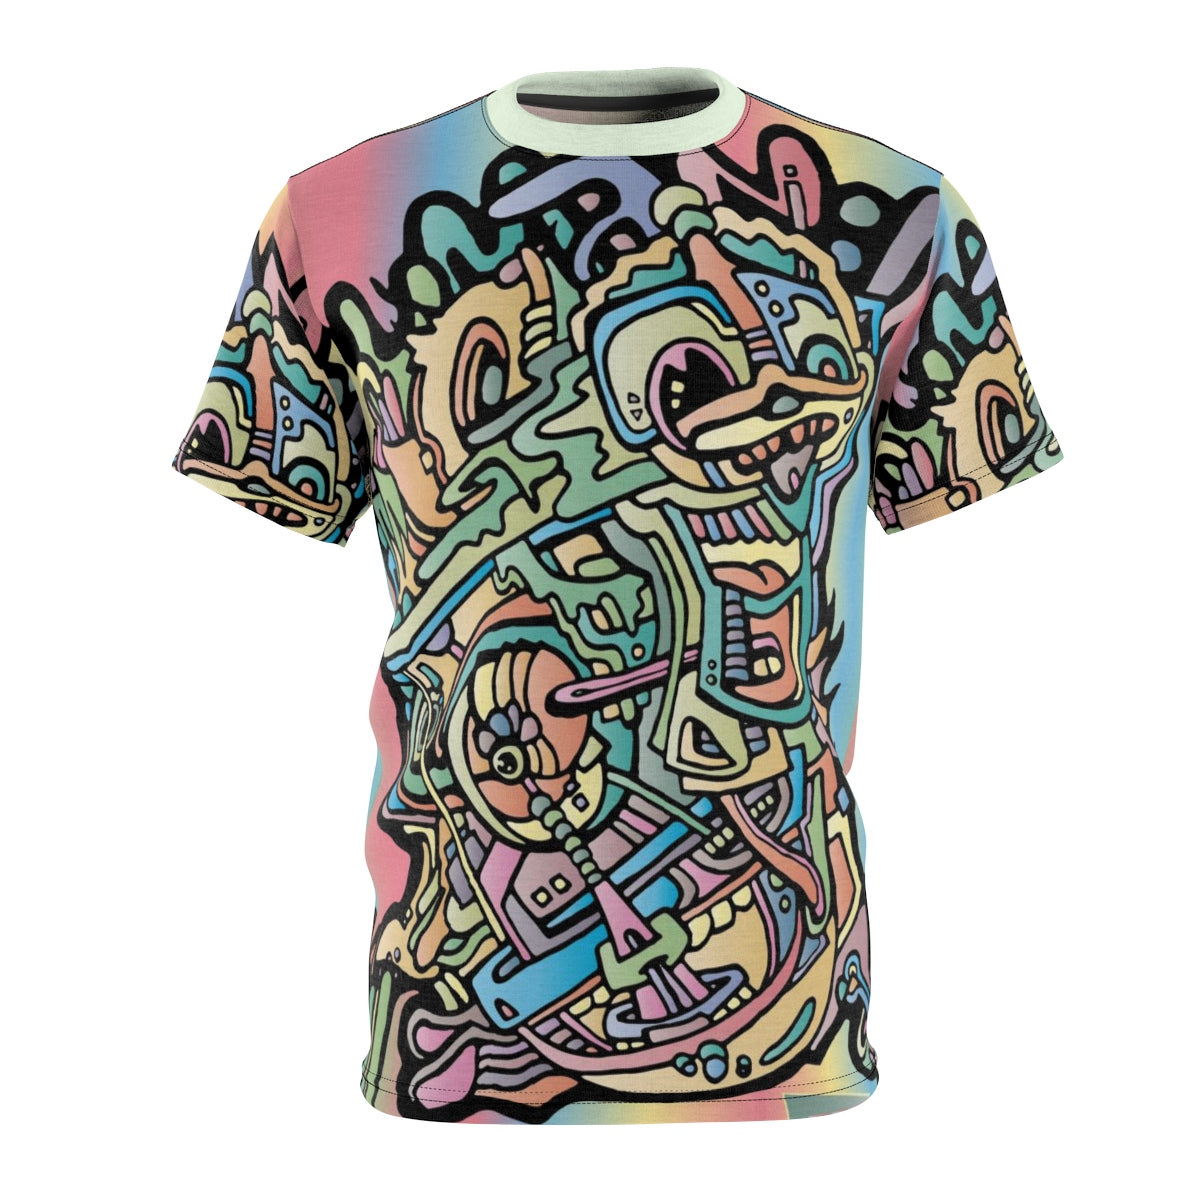 Aeqea Boogerman - All-Over-Print Unisex Cut & Sew Tee